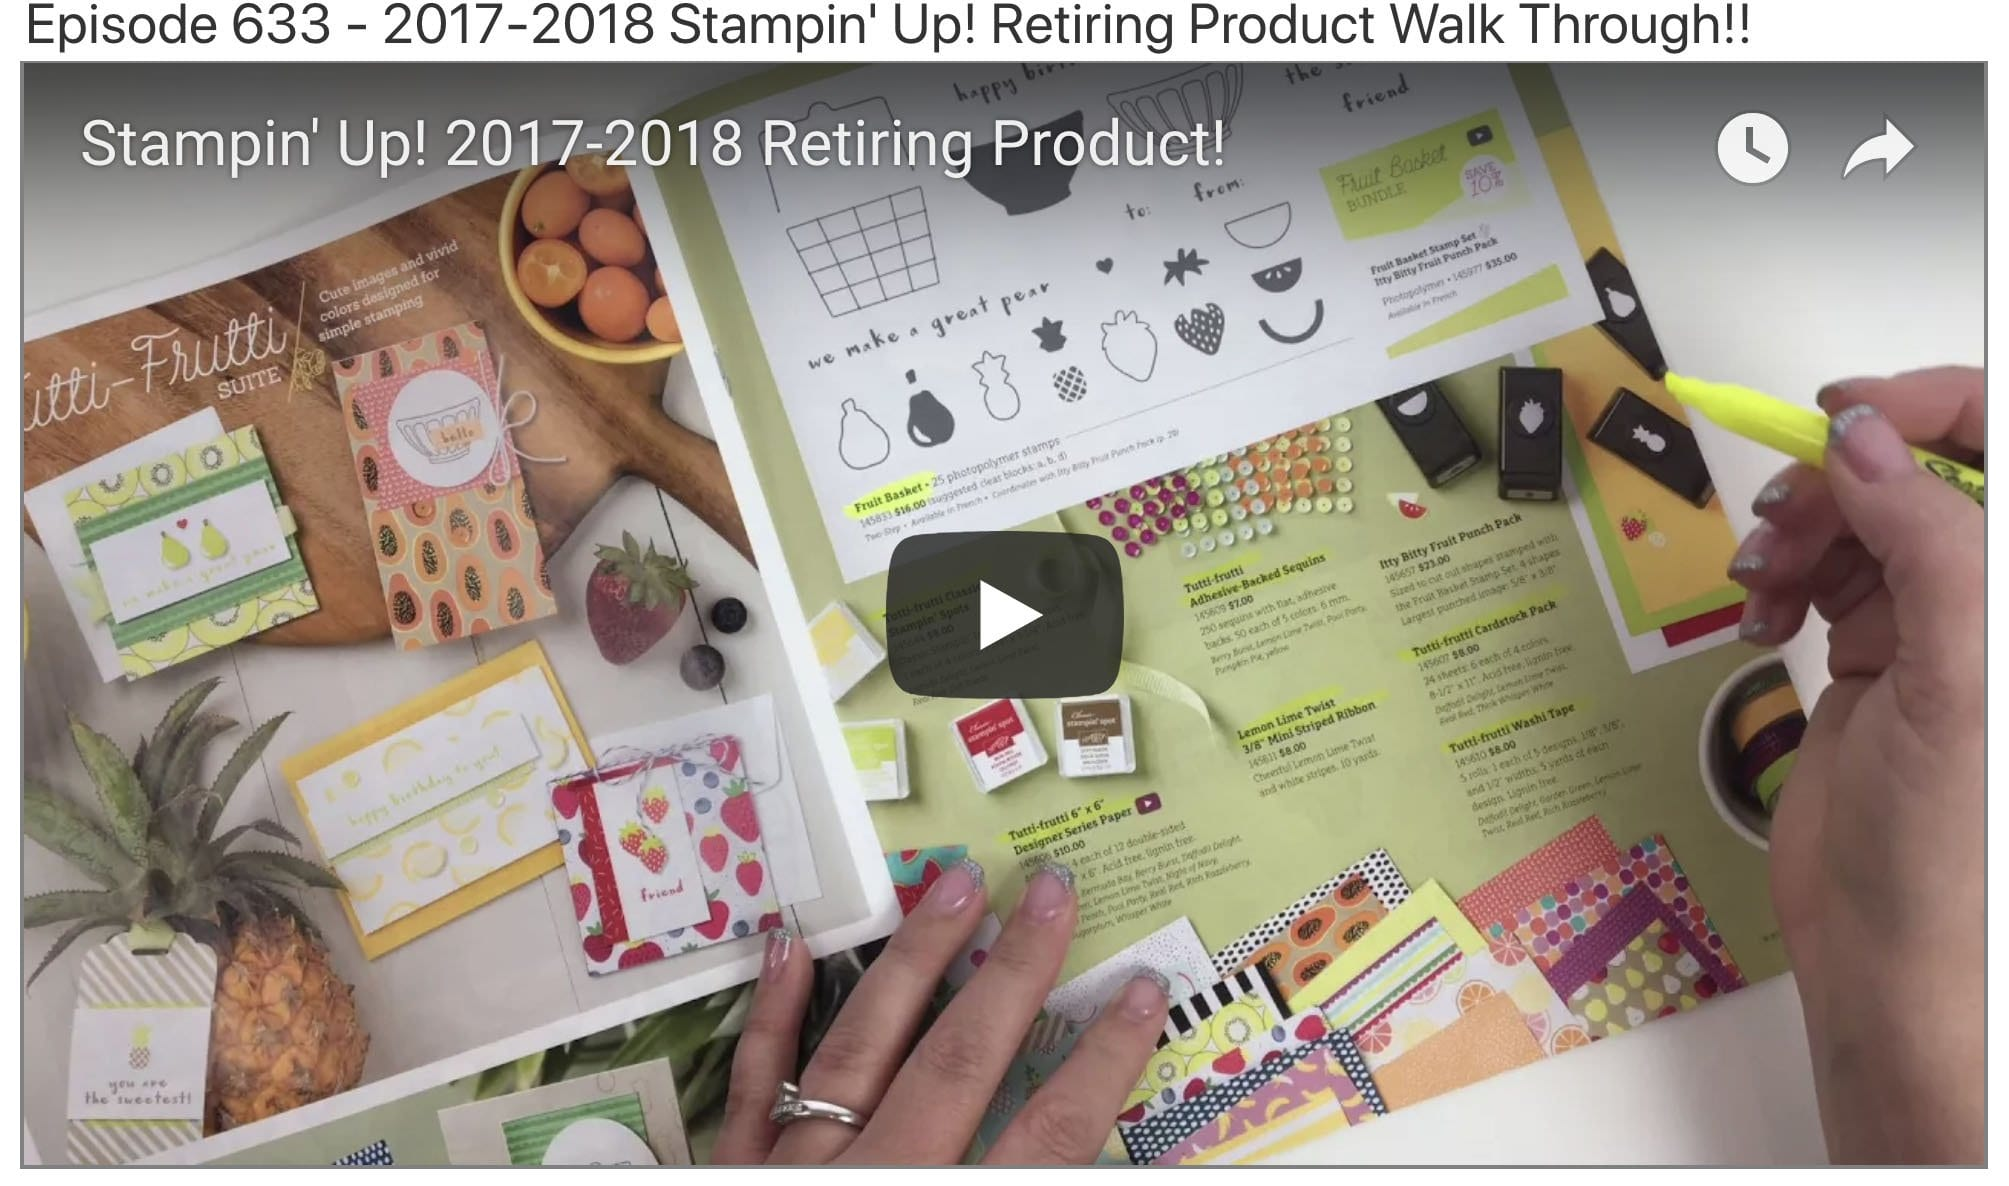 FULL Video Tutorial of Retiring Product!!